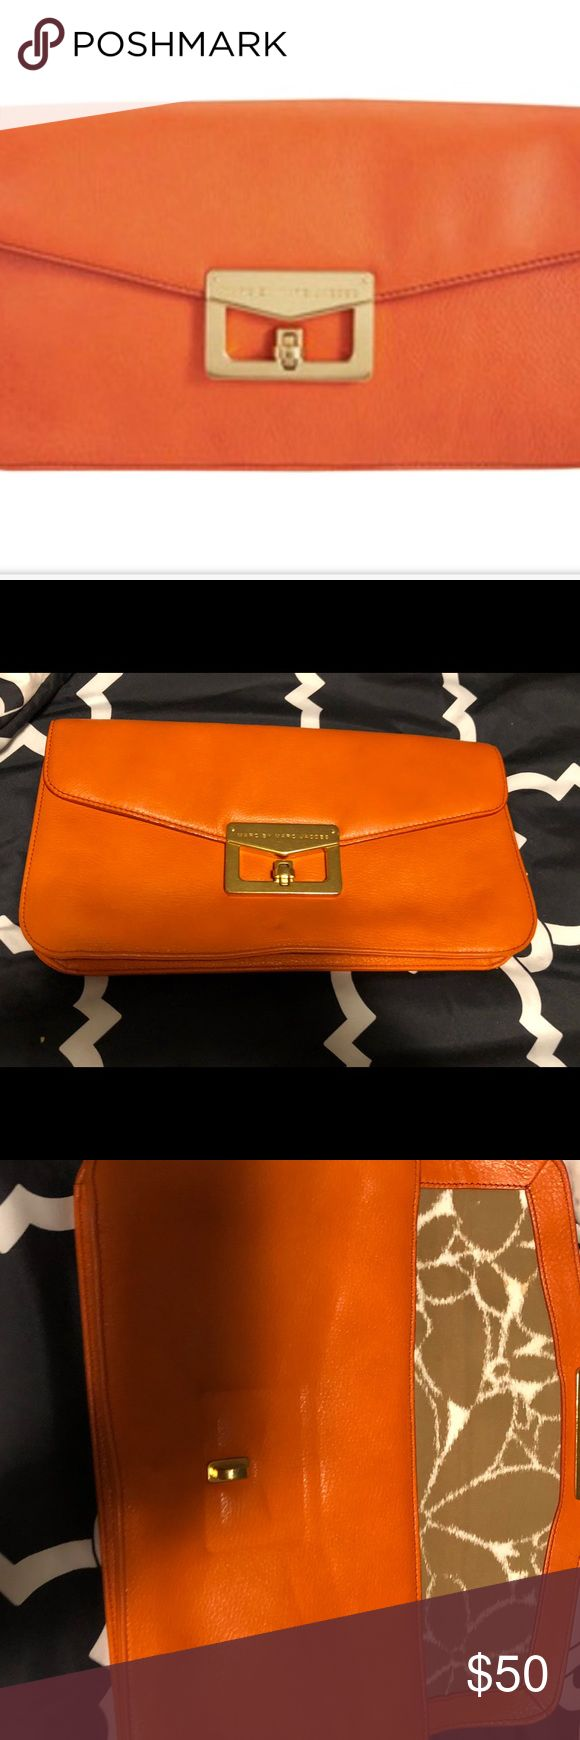 Marc Jacobs Clutch Beautiful like new orange clutch Marc Jacobs Bags Clutches & Wristlets